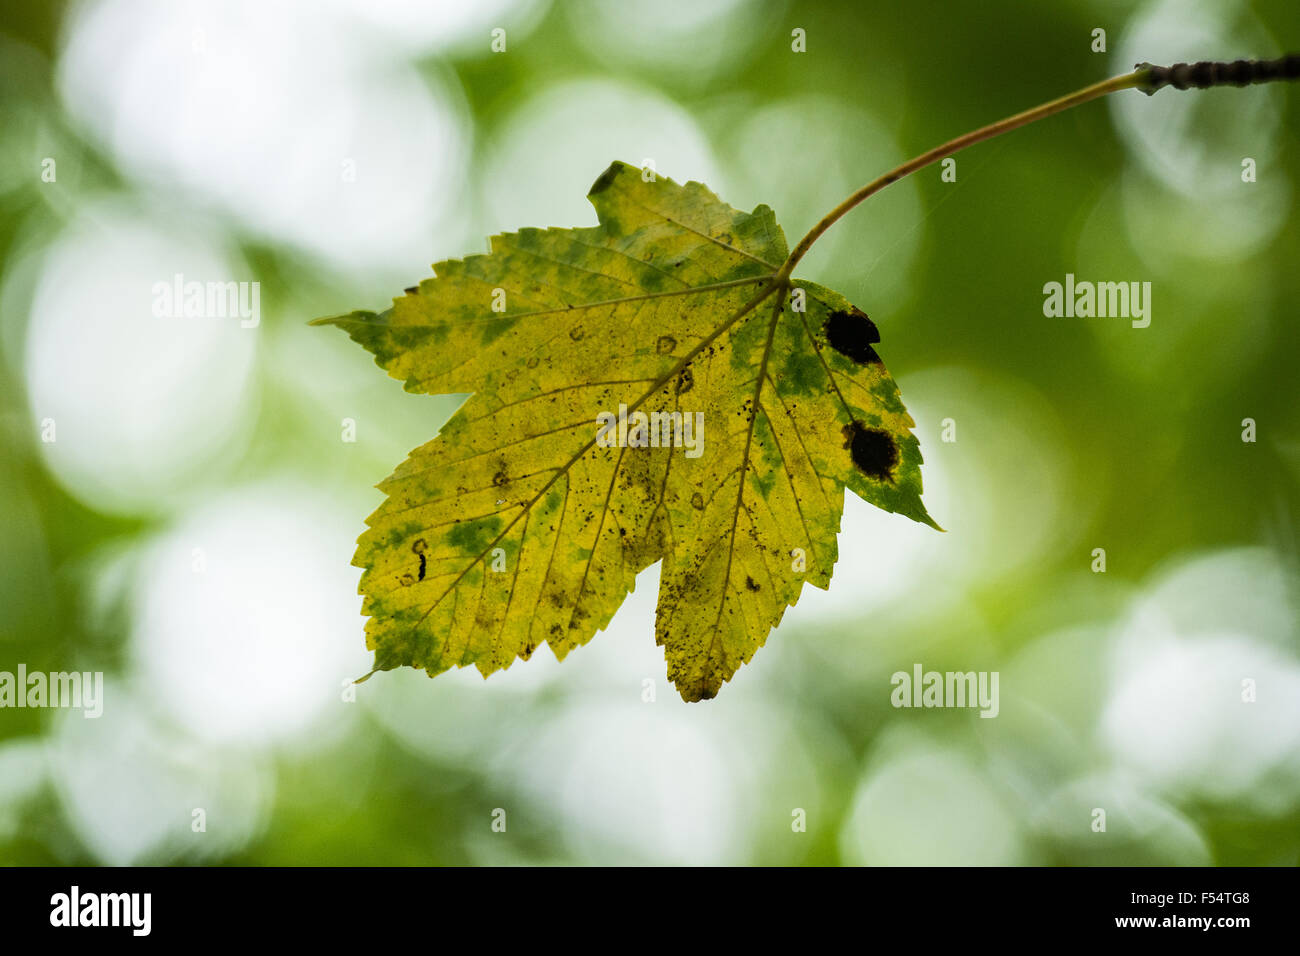 Maple leaf in Autumn with tar spot fungal disease - Stock Image